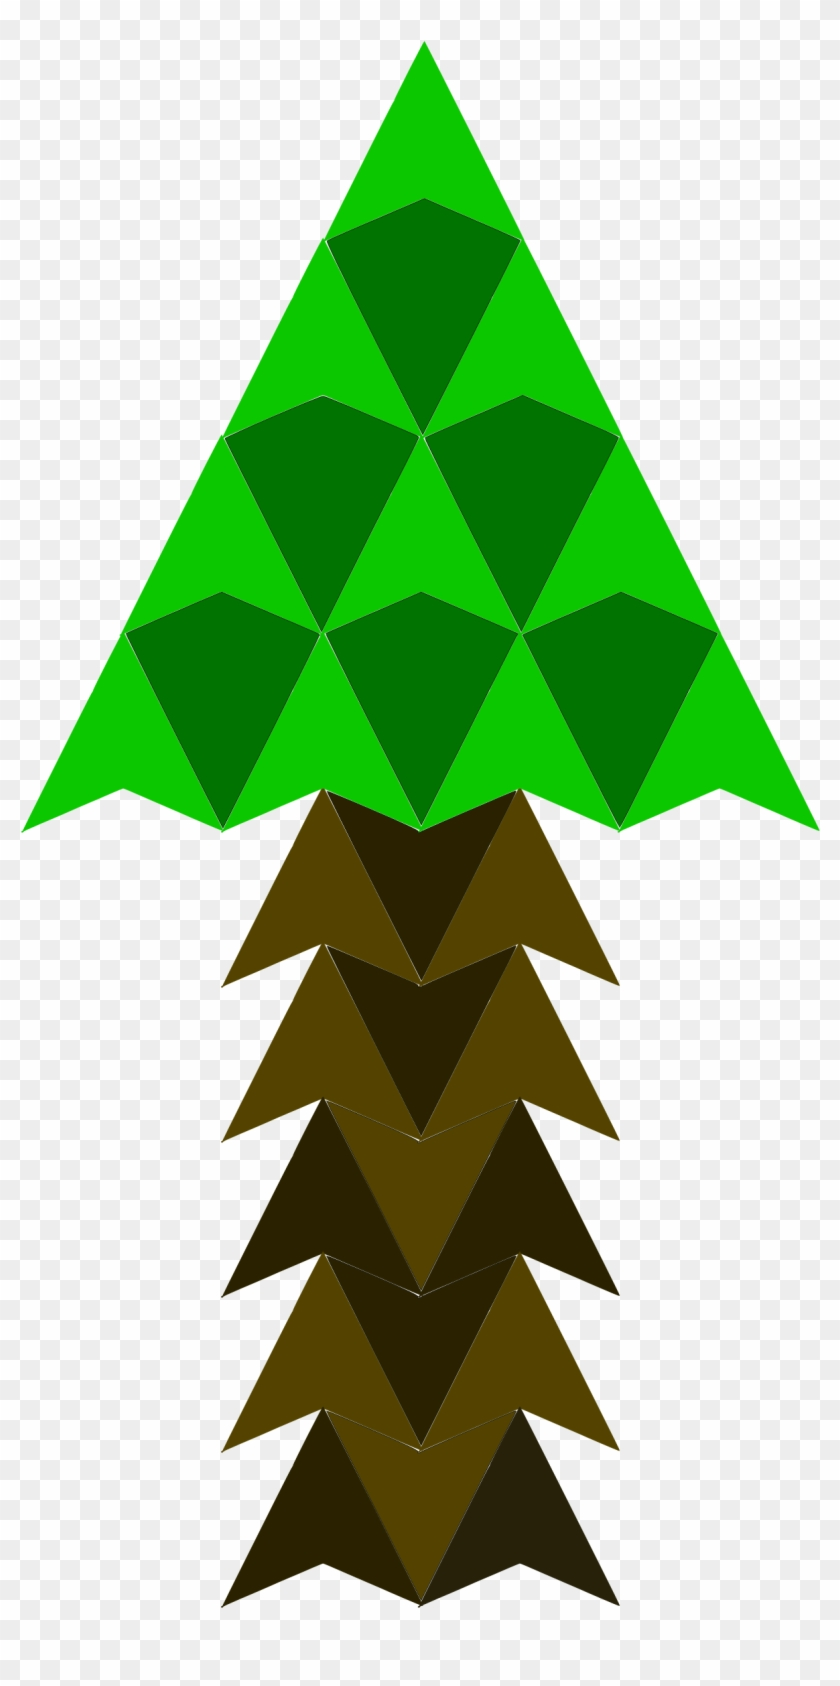 This Free Icons Png Design Of Arrow Tree - Tree Arrow Png Clipart #3952238